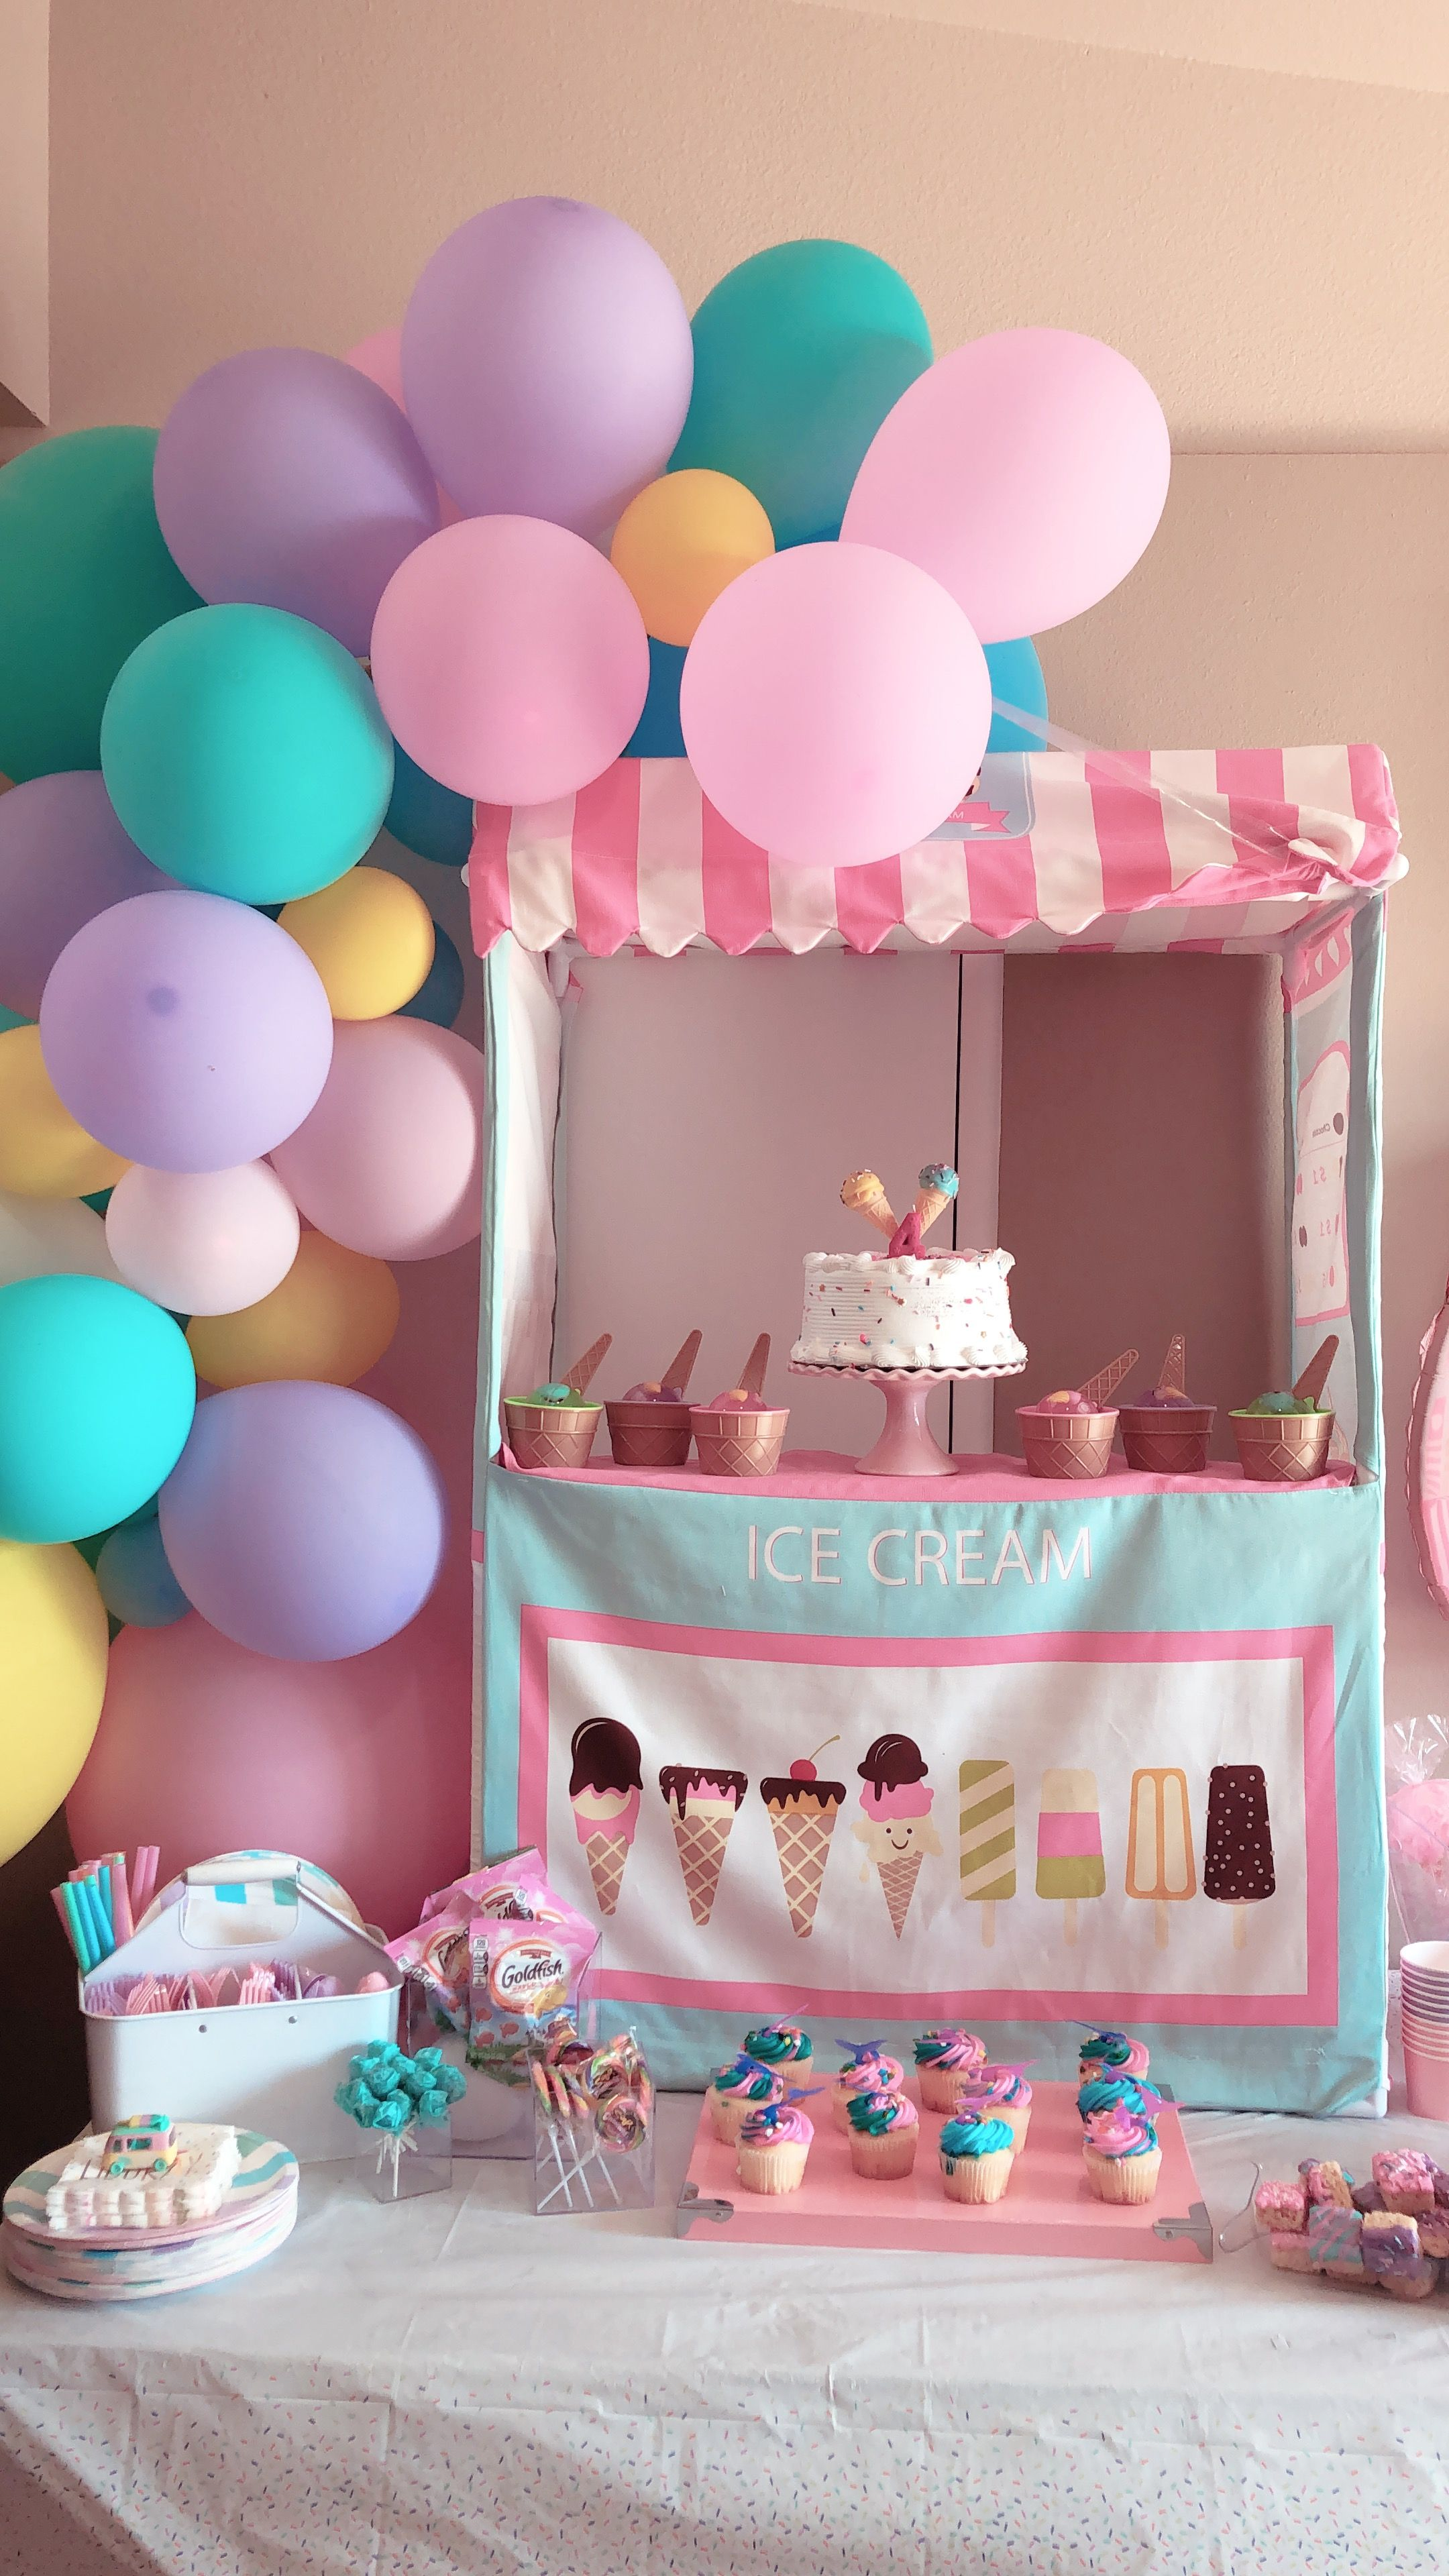 Ice Cream Birthday Party For My 4 Year Old In